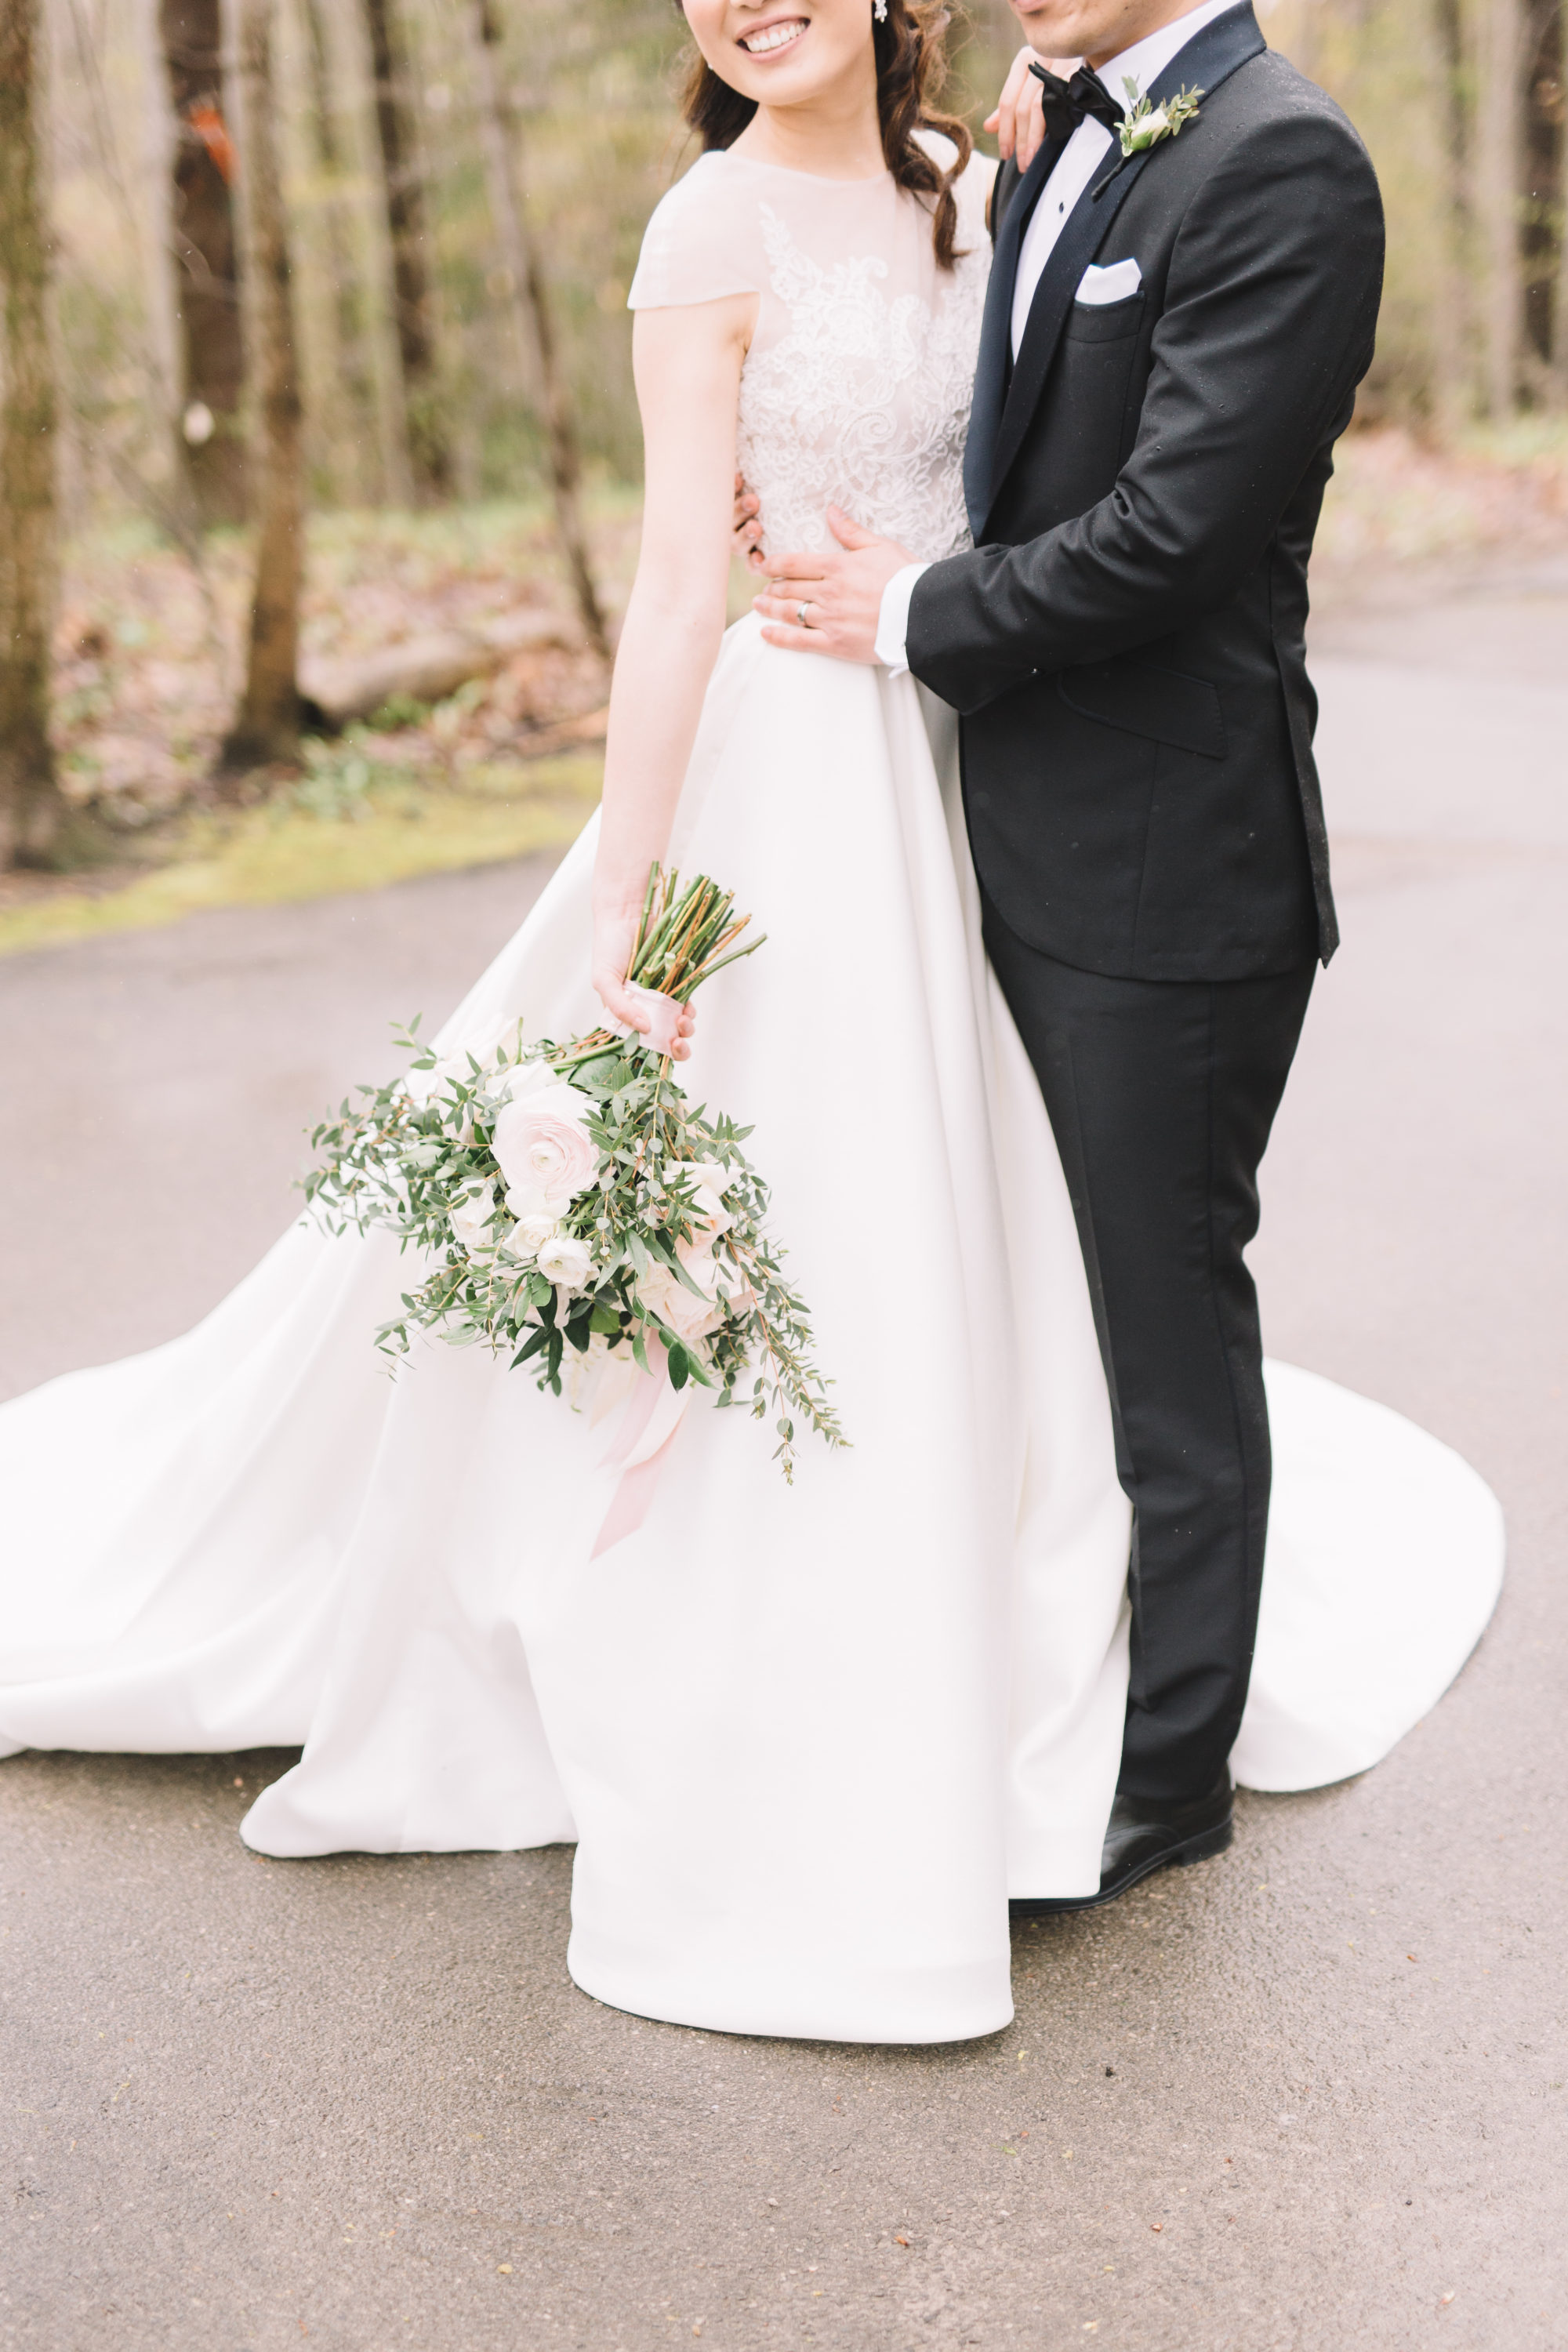 Bride and Groom in rainy forest at Whistle Bear